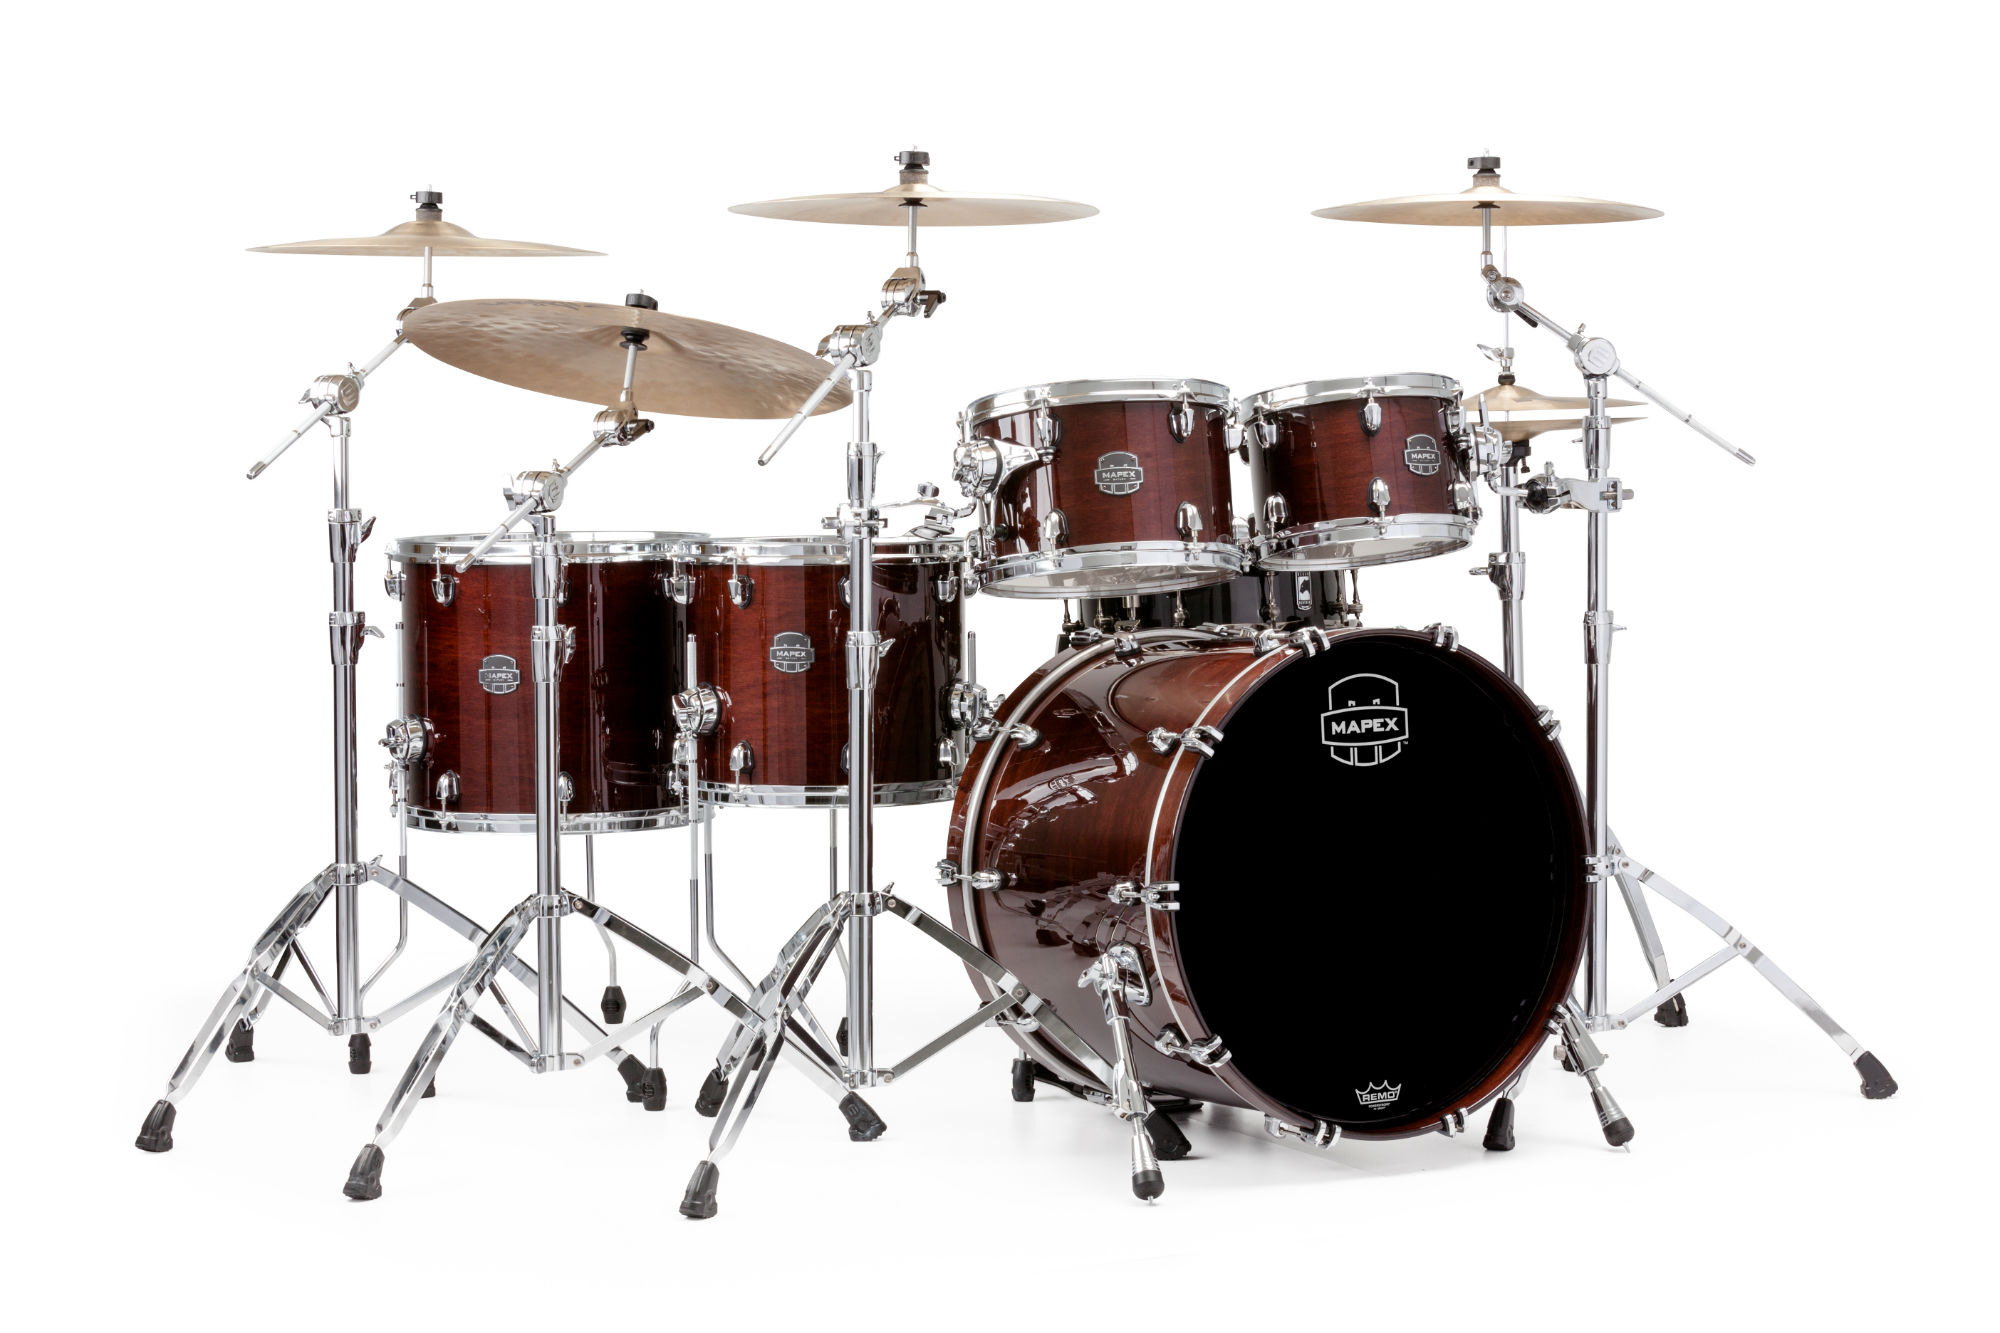 Mapex Saturn V MH Studioease 5-piece shell pack with SONIClear Edge - SV628XUTW - Transparent Espresso Walnut